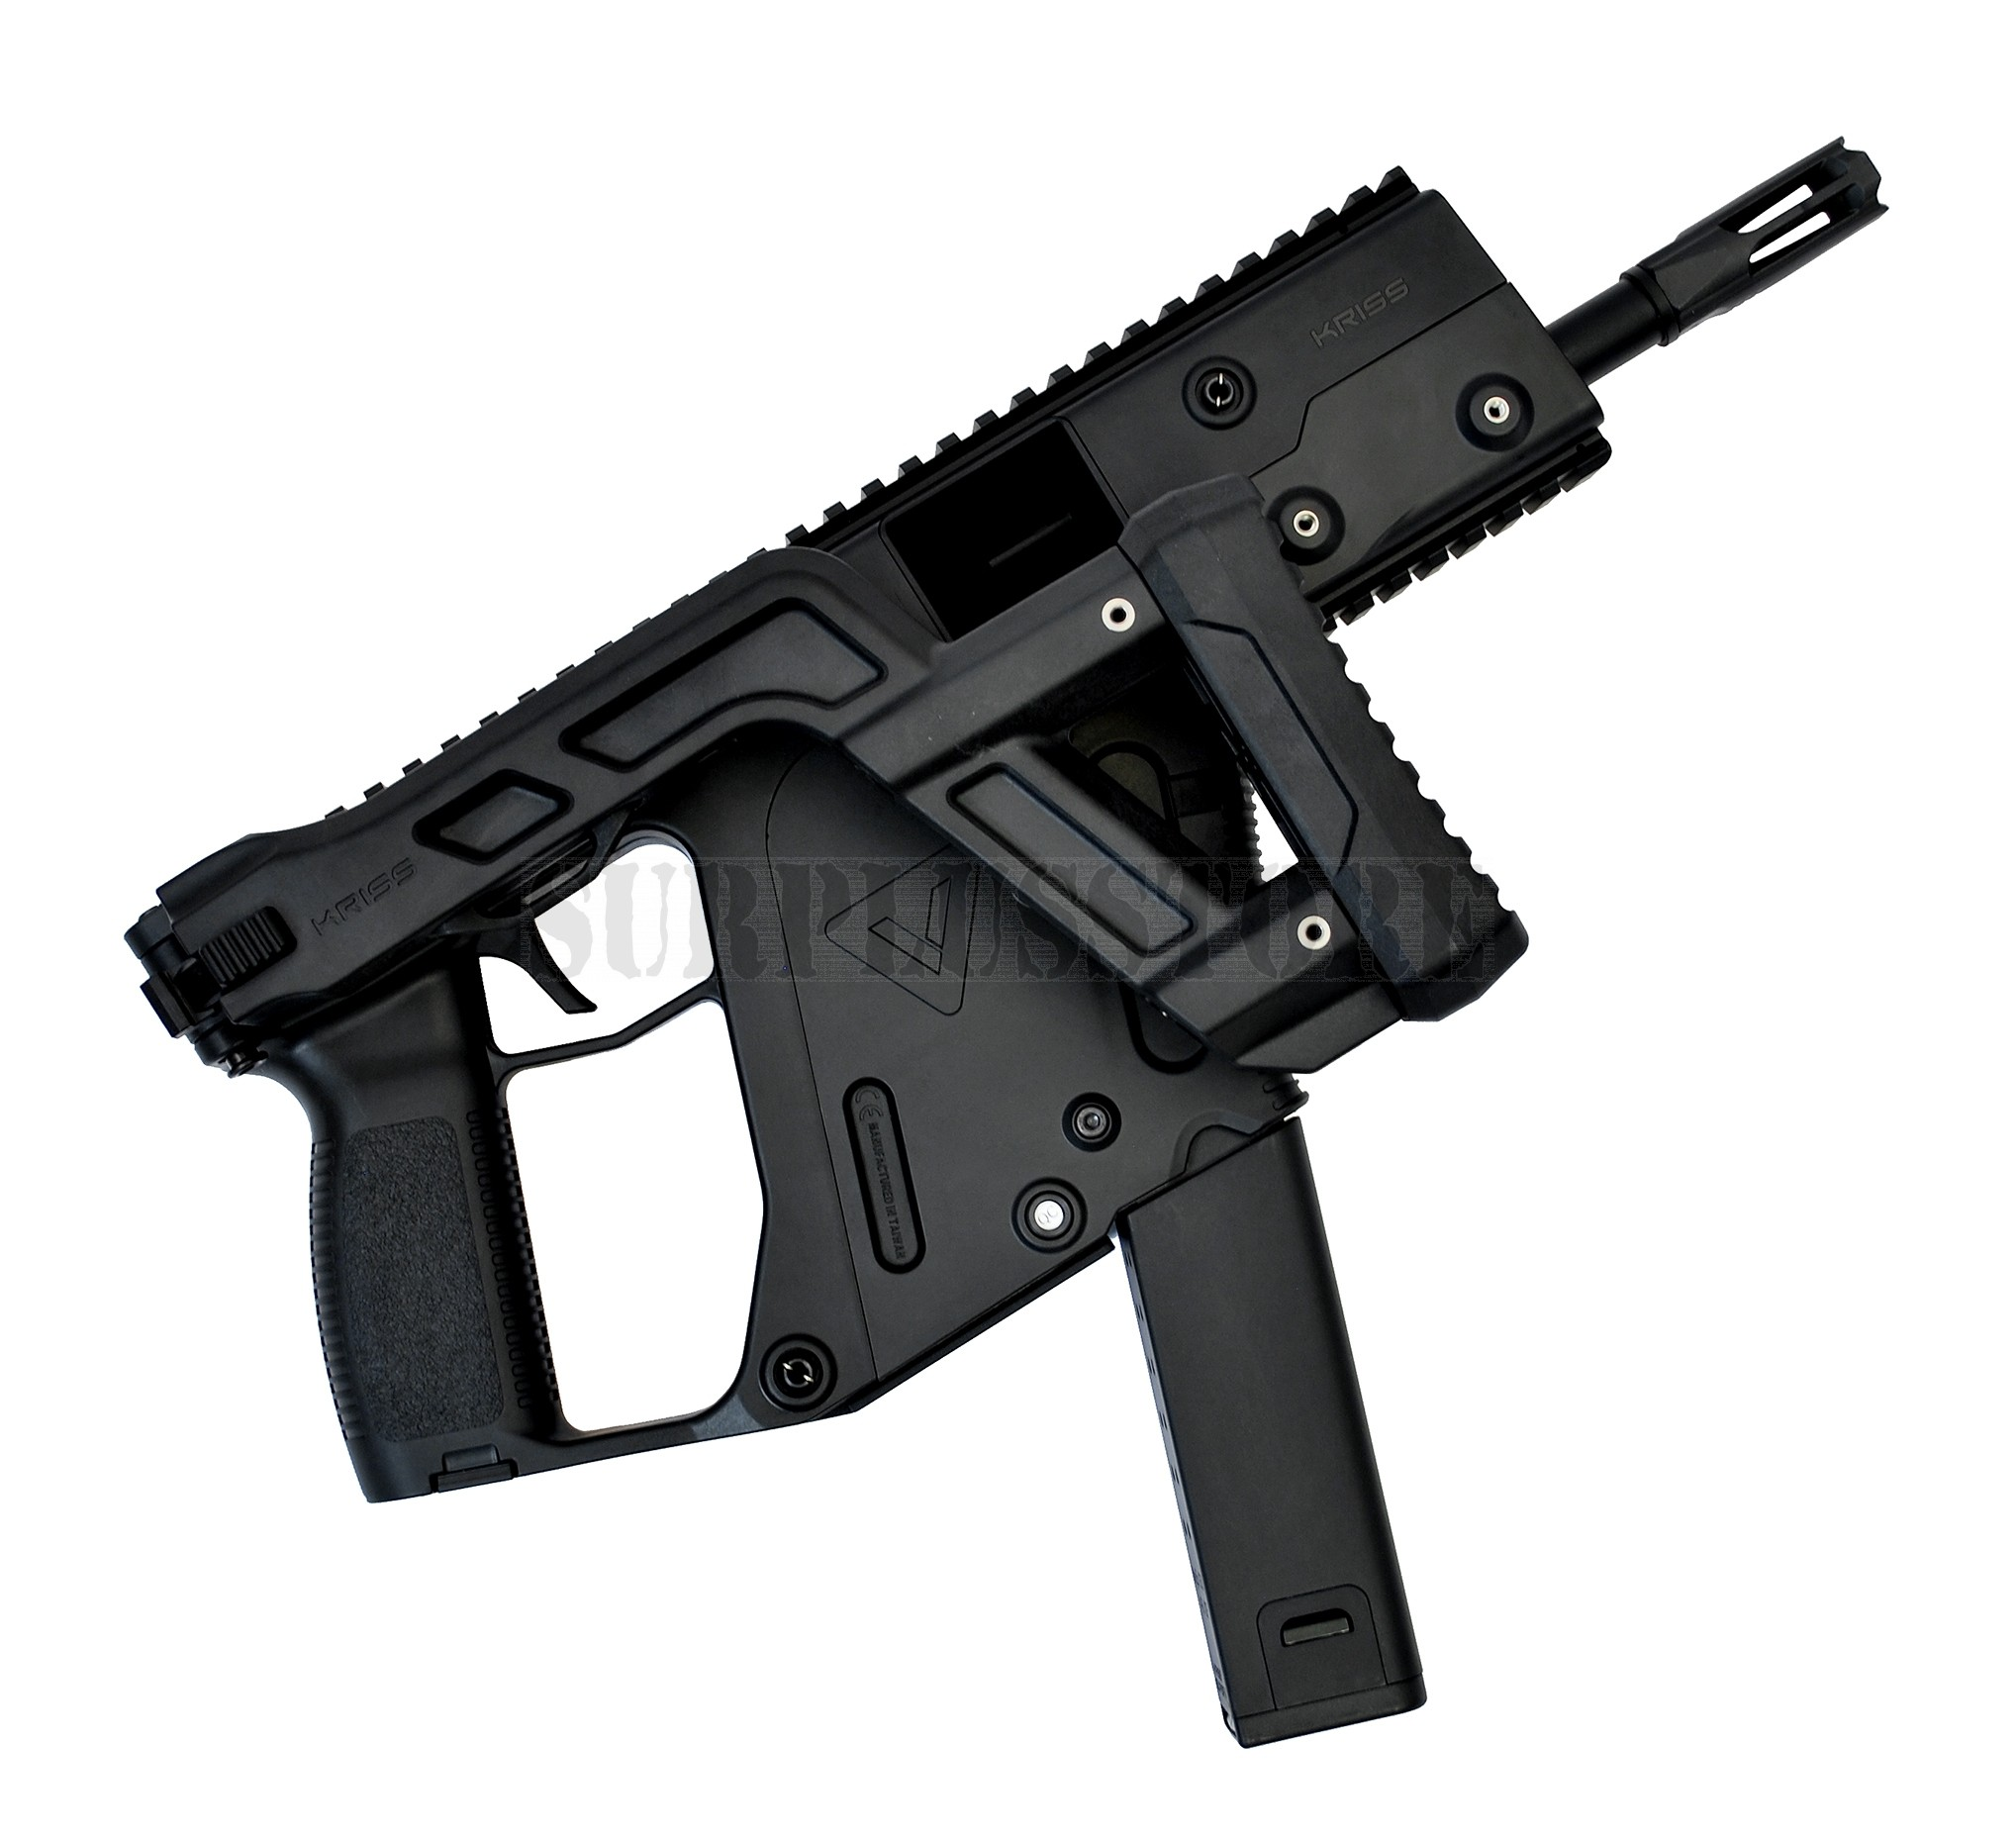 2037x1859 Krytac Kriss Vector Aeg 6mm Airsoft Electric Rifle